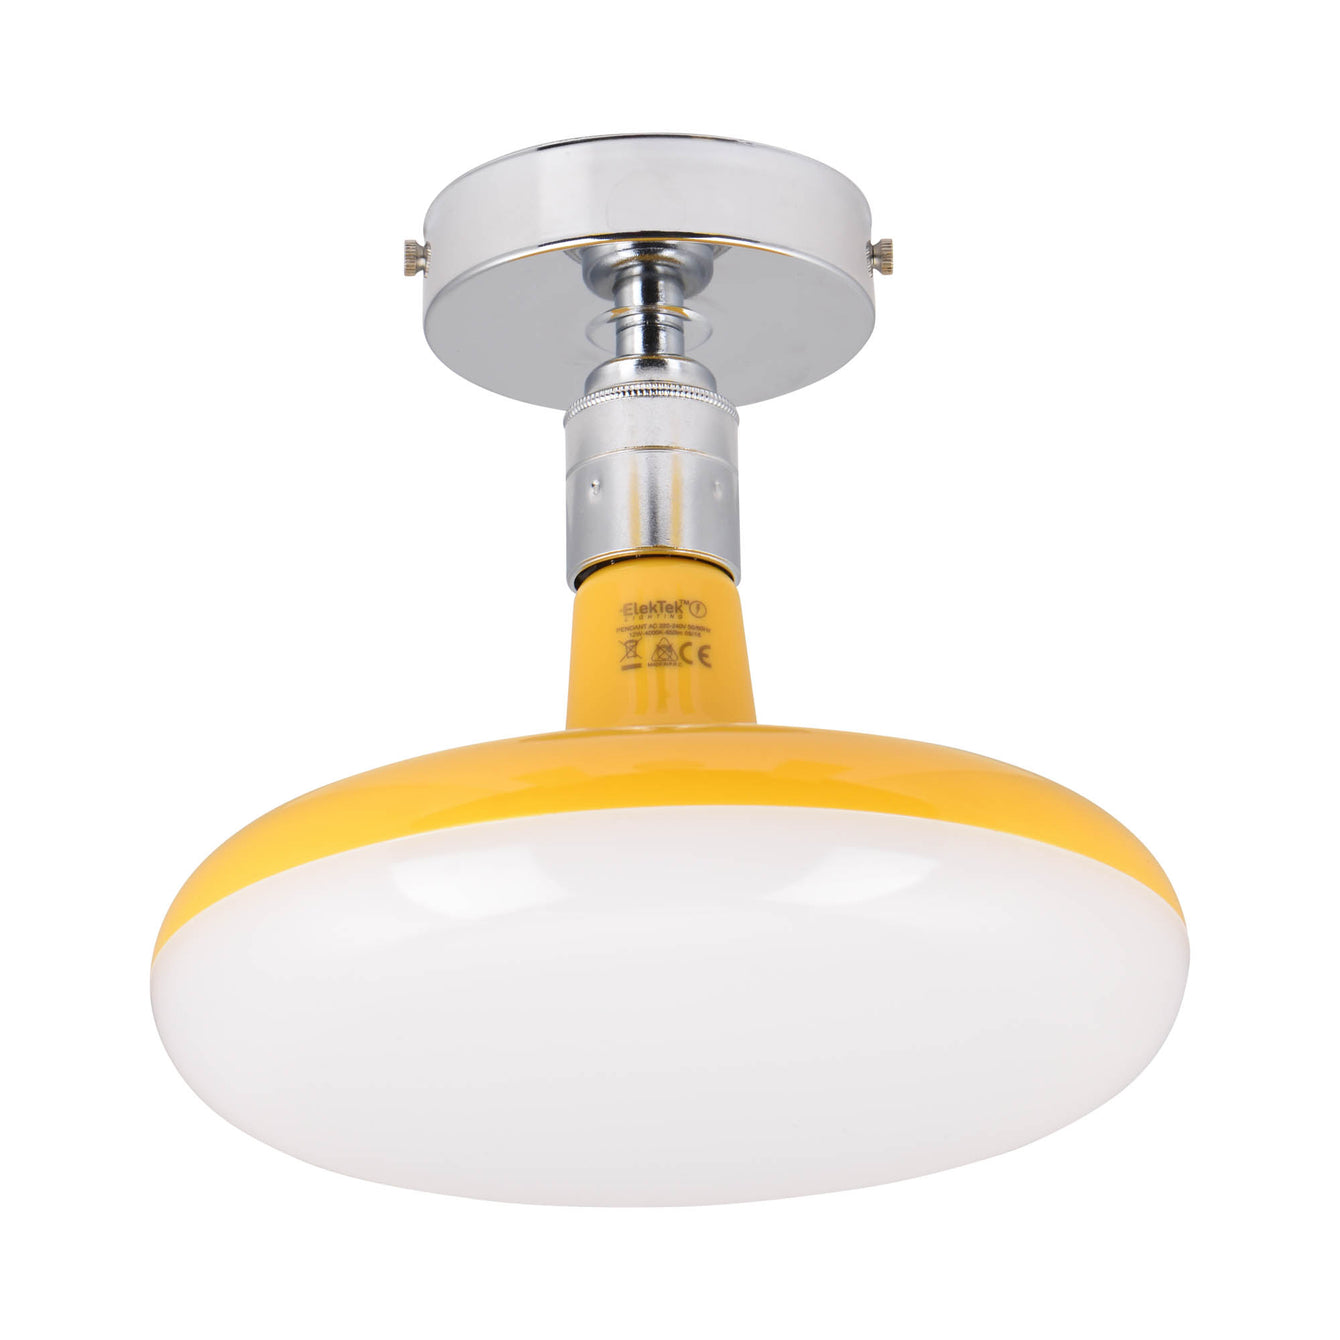 ElekTek Axmar Compact Ceiling Pendant Light Set Ideal for Lower Ceilings with 12 or 18 watt LED Lamp Colours - Buy It Better White / Turquoise / 12 W